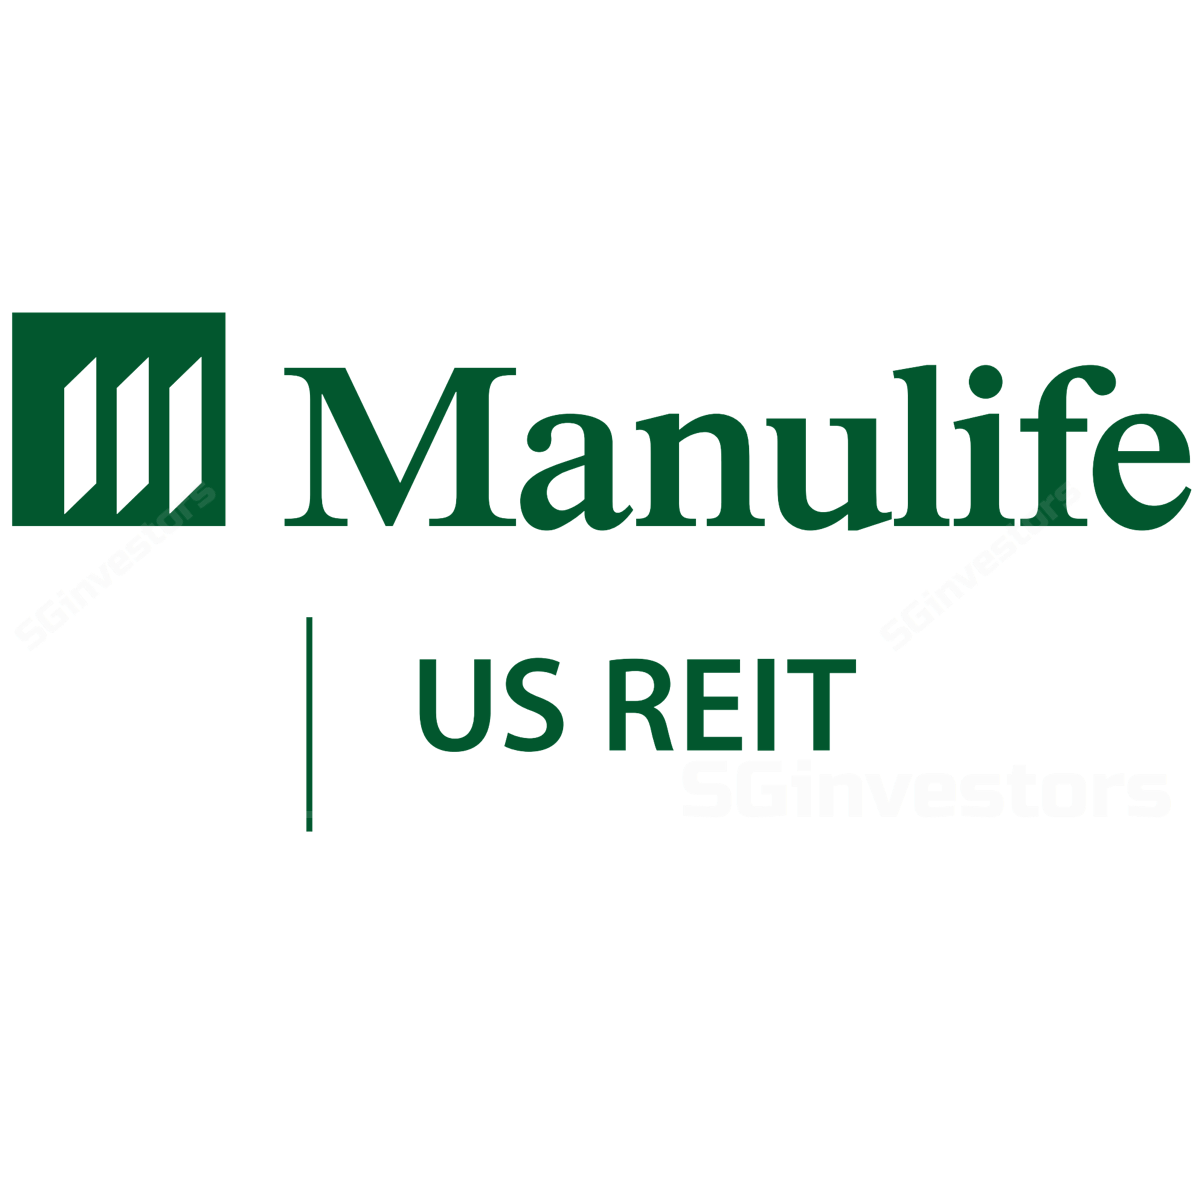 Manulife US REIT - UOB Kay Hian 2018-05-02: 1q18 Results Of Must In Line